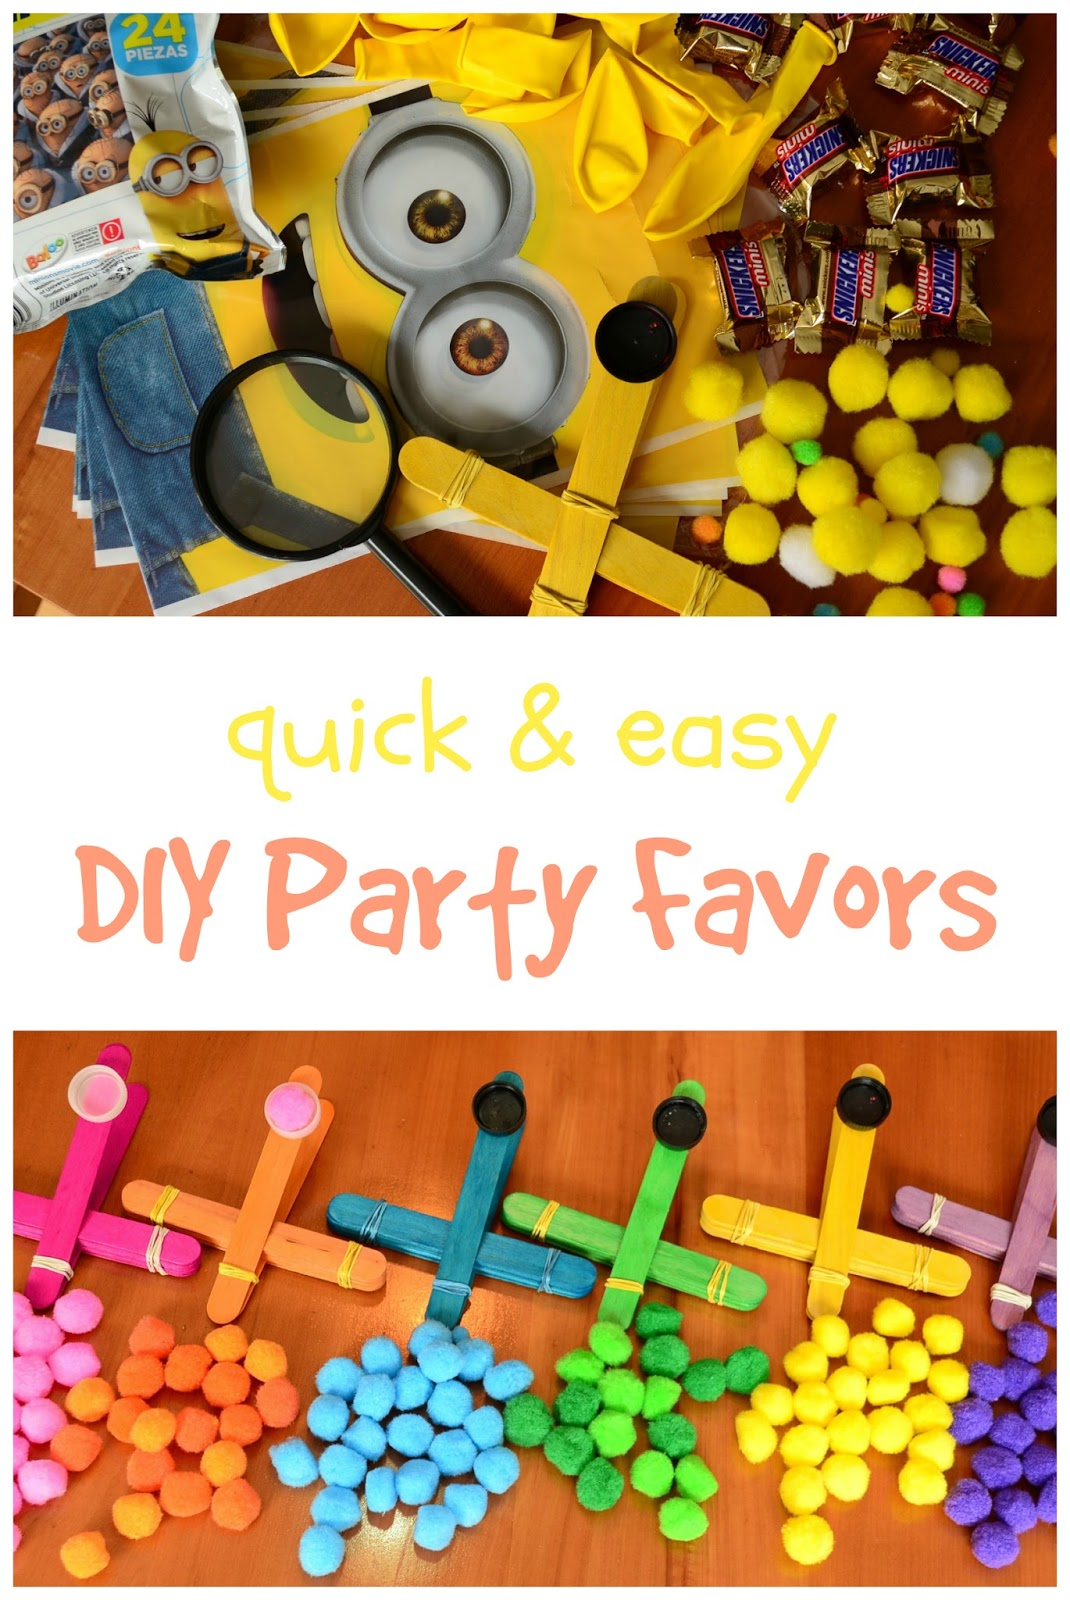 DIY Party Favors (with Pom Pom Catapult) your kids will go nuts over these! #LaughLearnLinkup